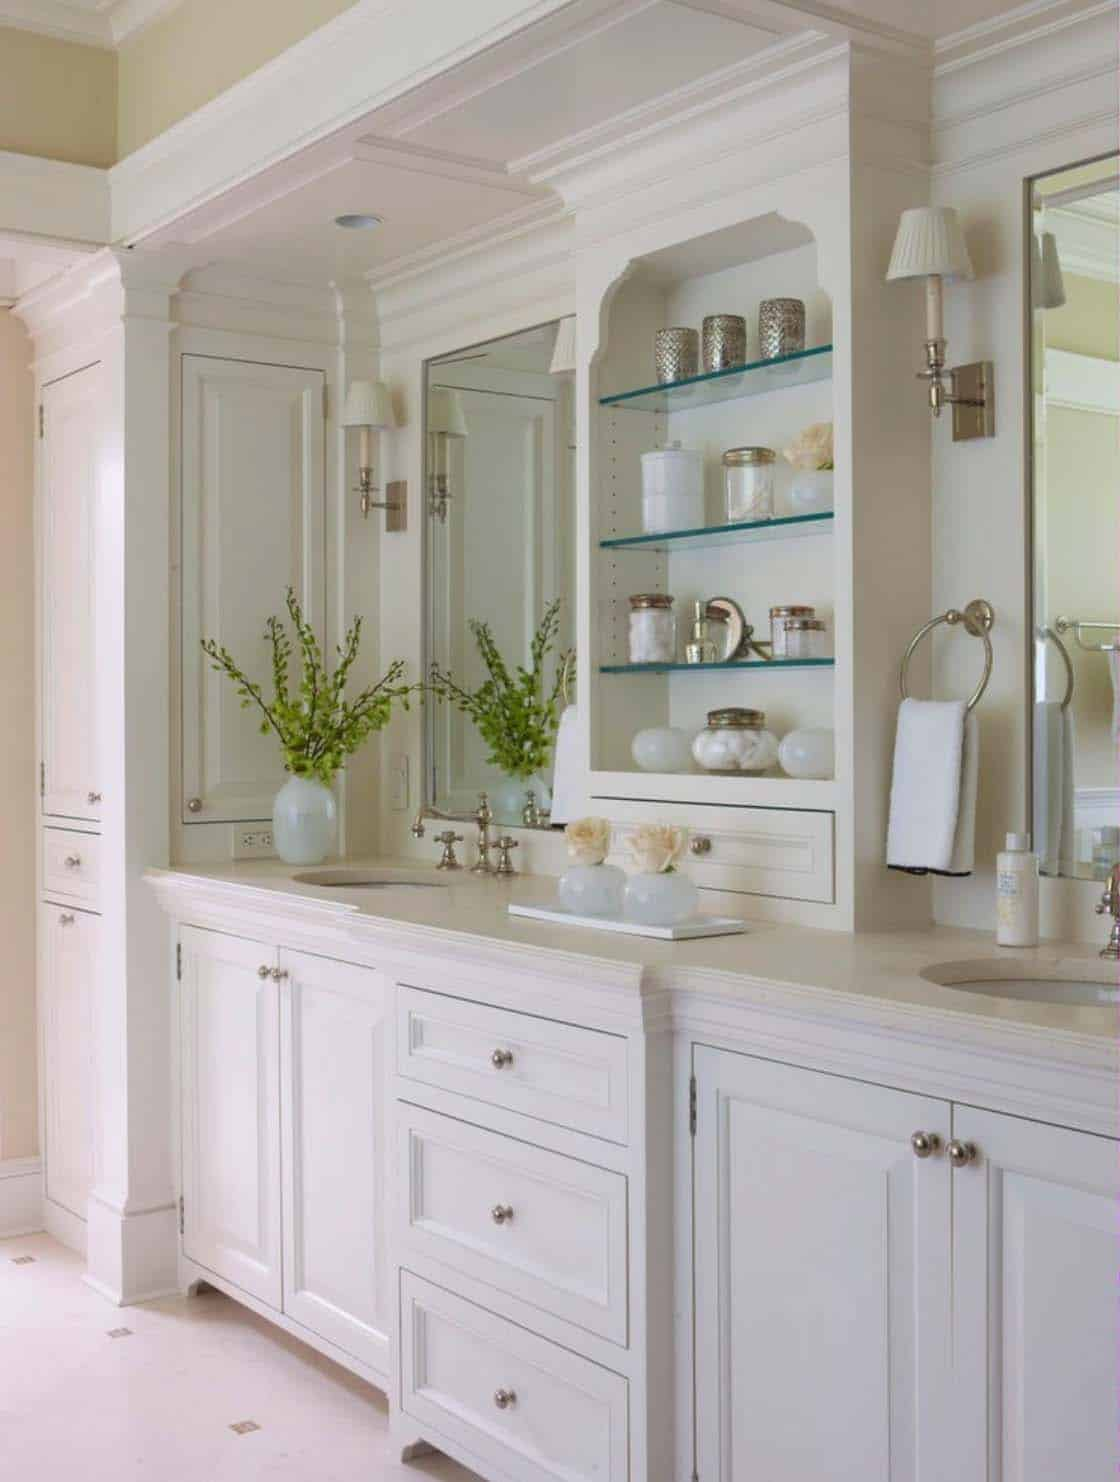 Traditional Bathroom Design Ideas-17-1 Kindesign